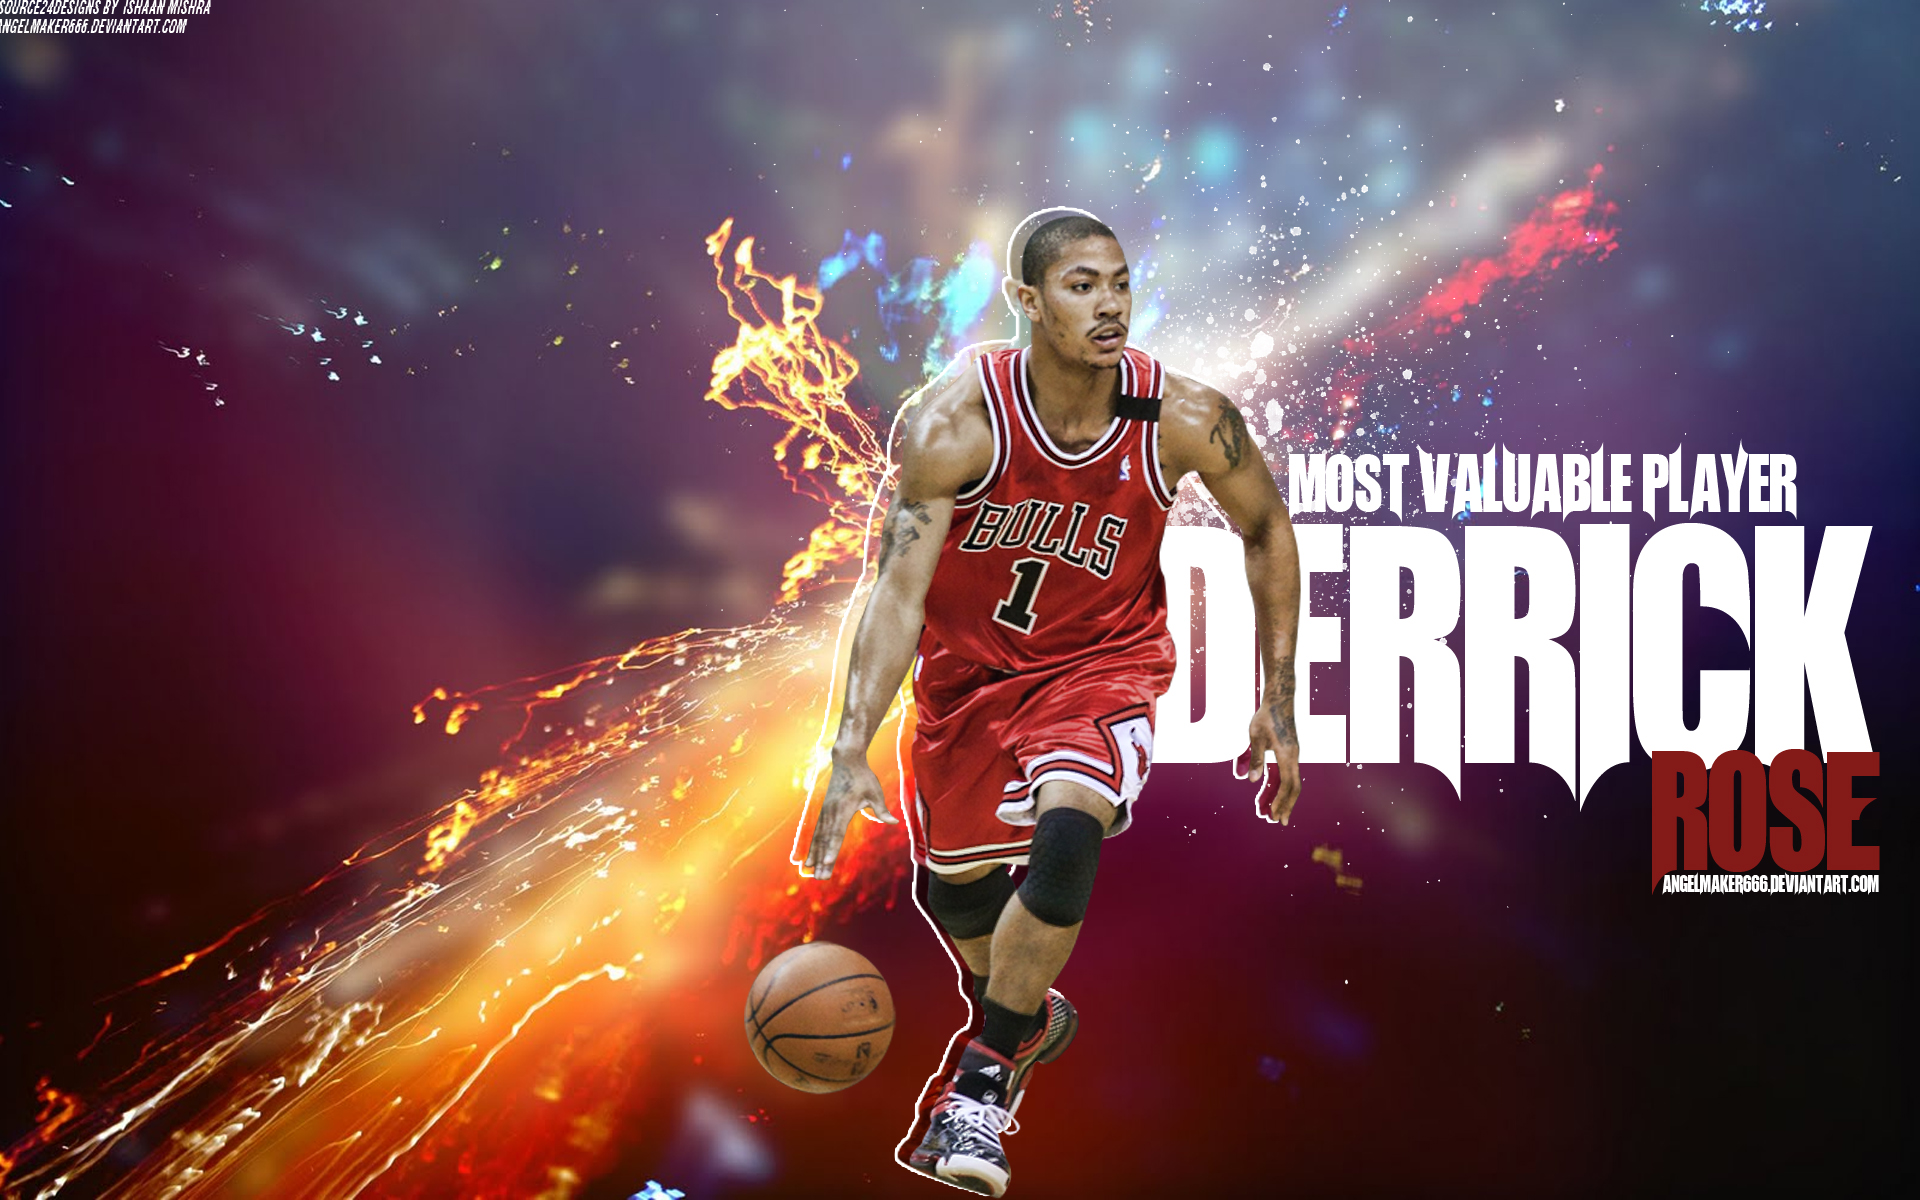 Derrick Rose Wallpaper 2014 Hd Derrick rose w 1920x1200